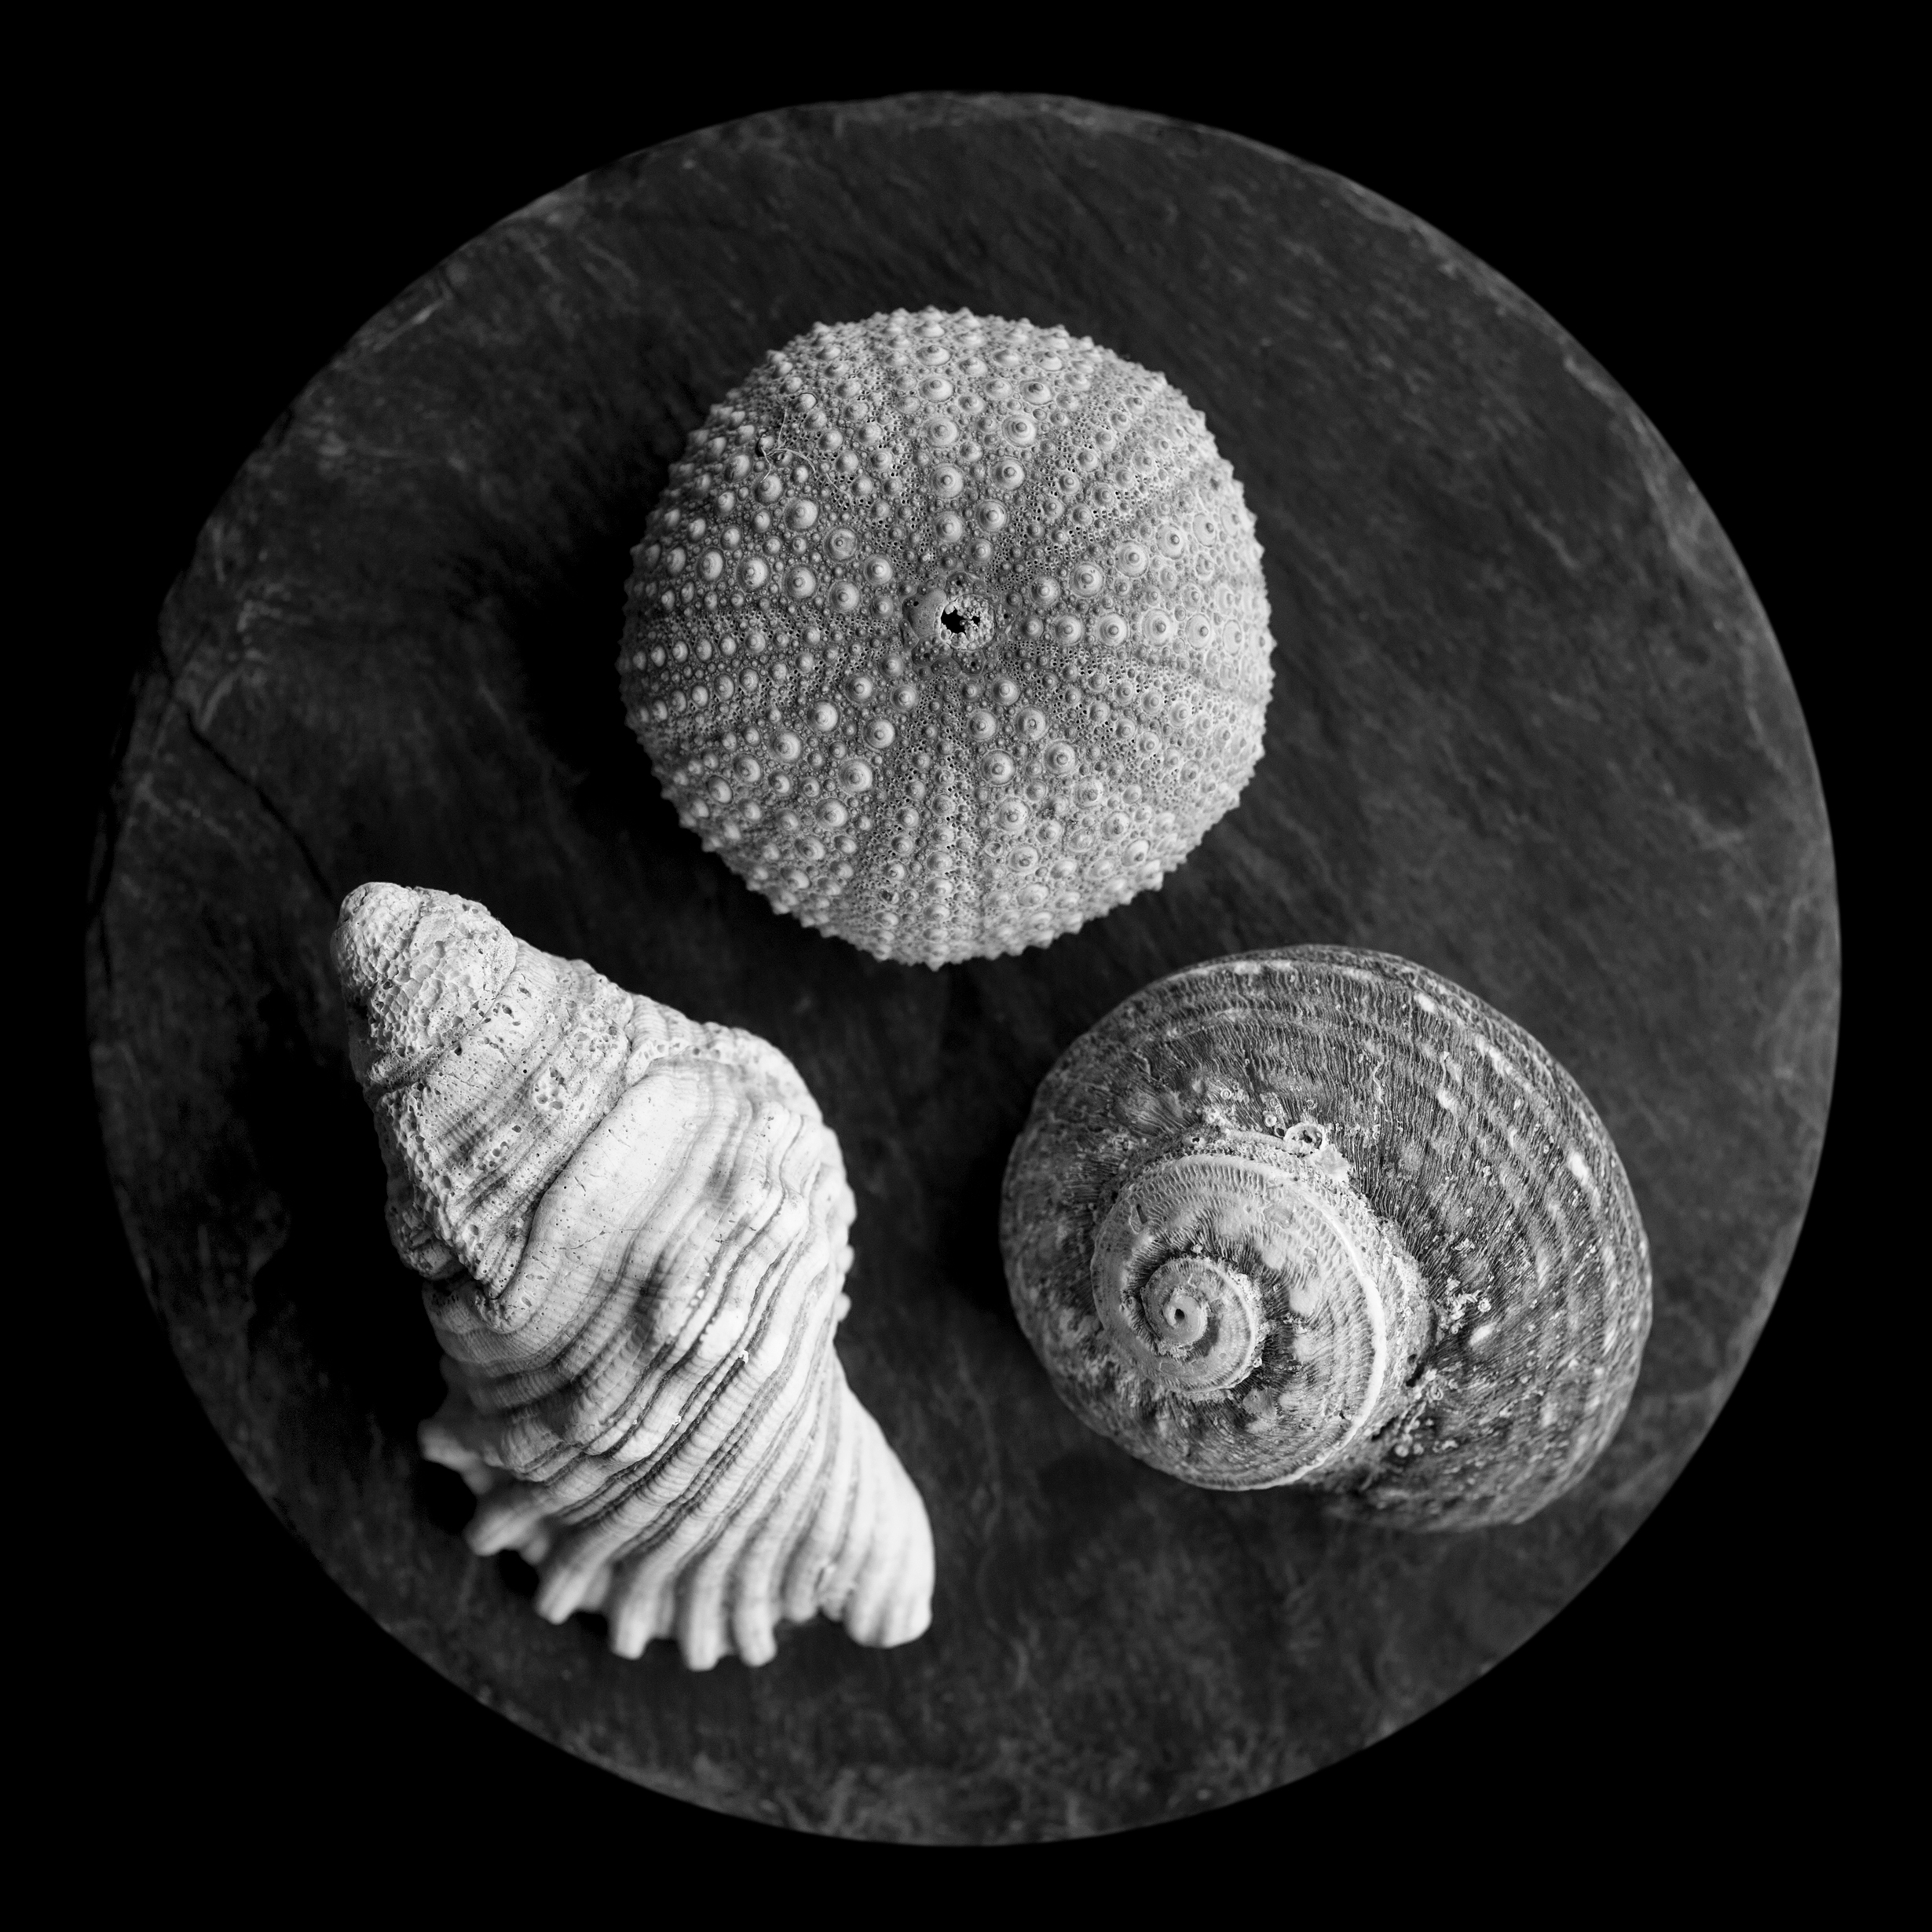 Shell Study, after Max Dupain.